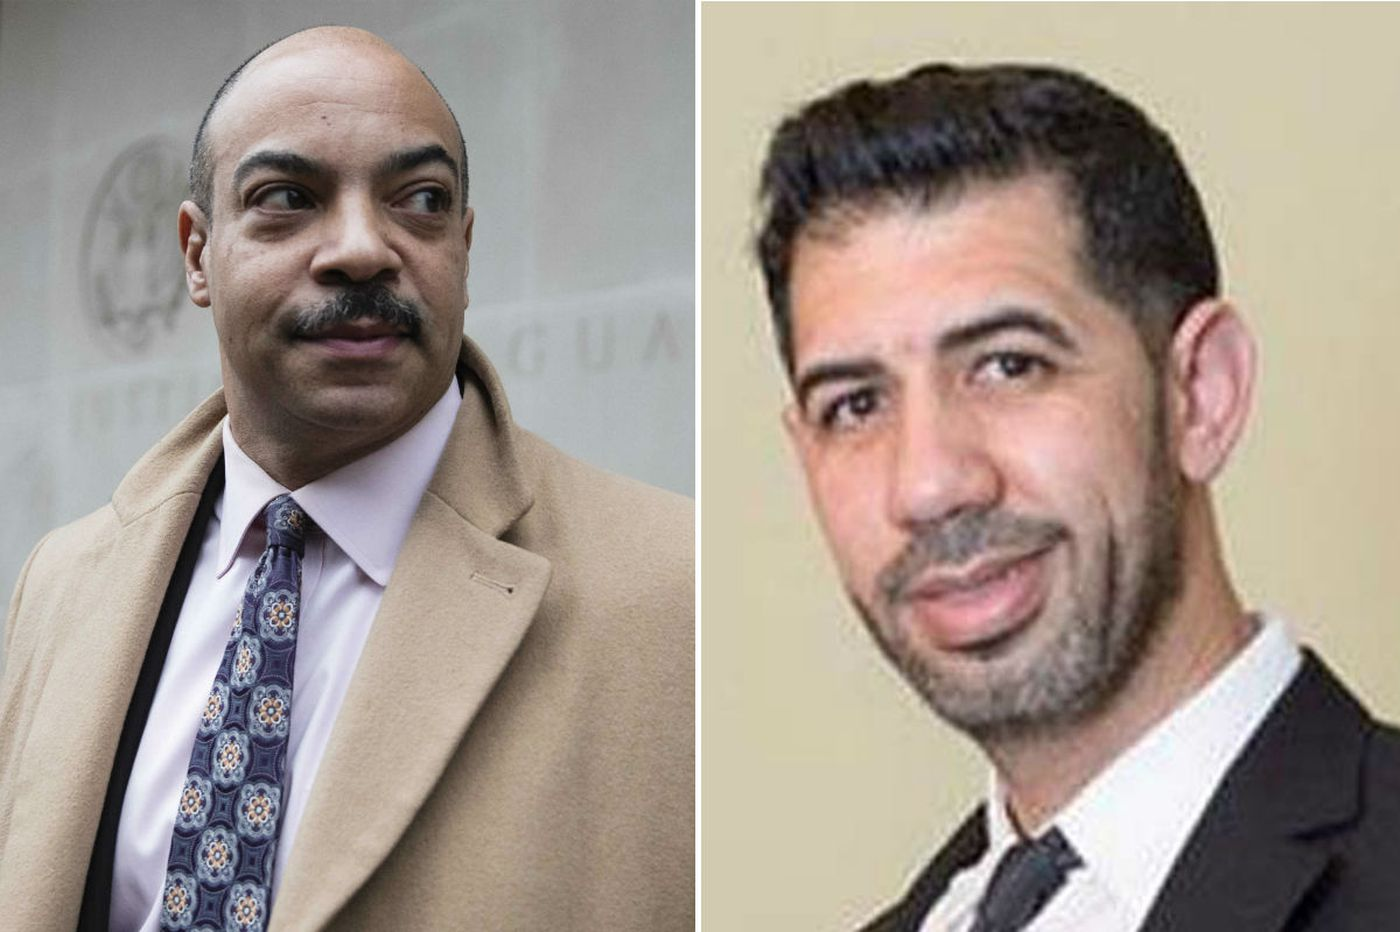 If benefactor tried to buy leniency, Seth Williams failed to deliver